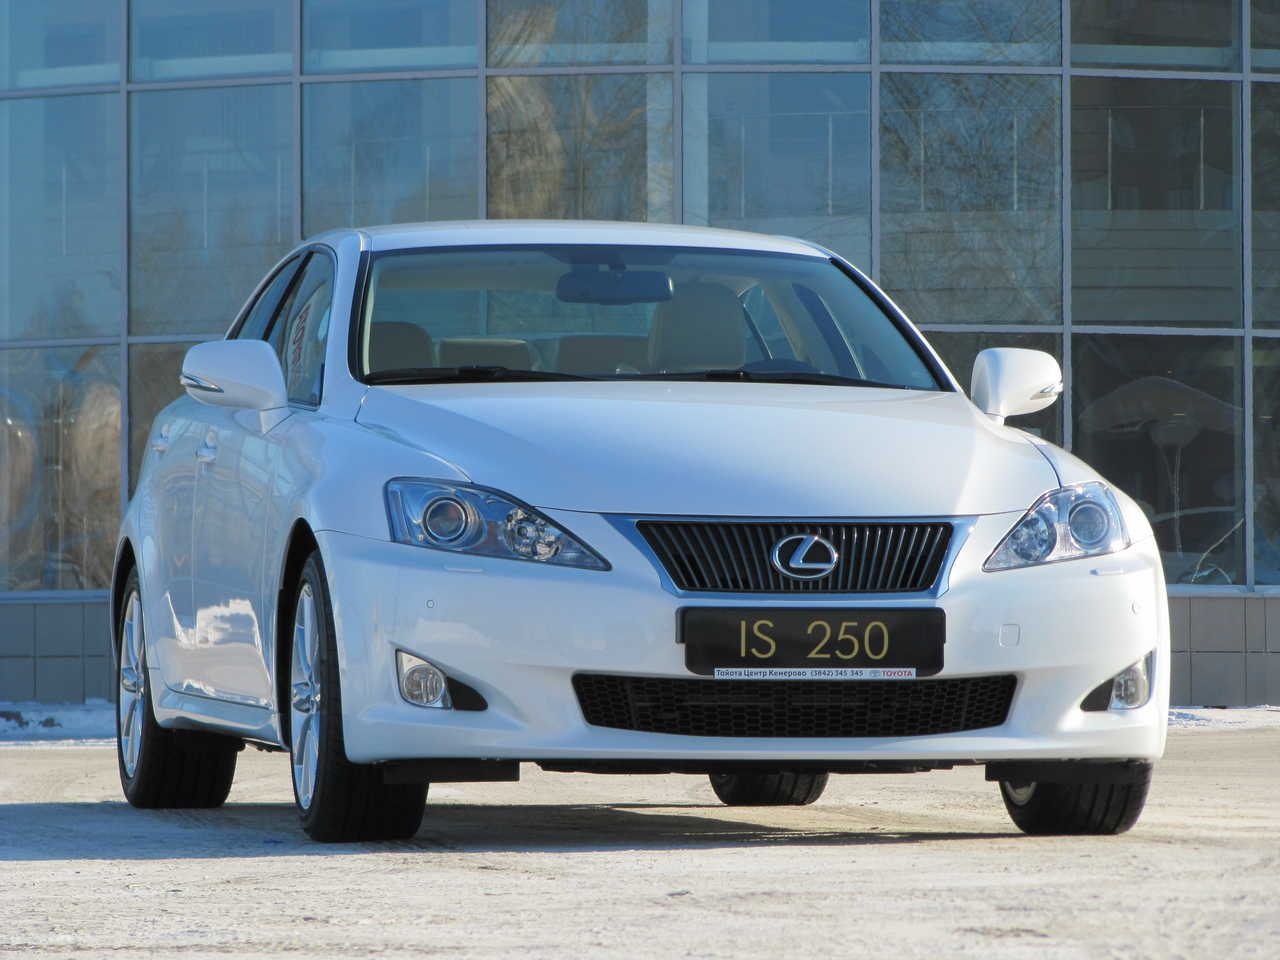 used 2009 lexus is250 photos 2500cc gasoline automatic for sale. Black Bedroom Furniture Sets. Home Design Ideas